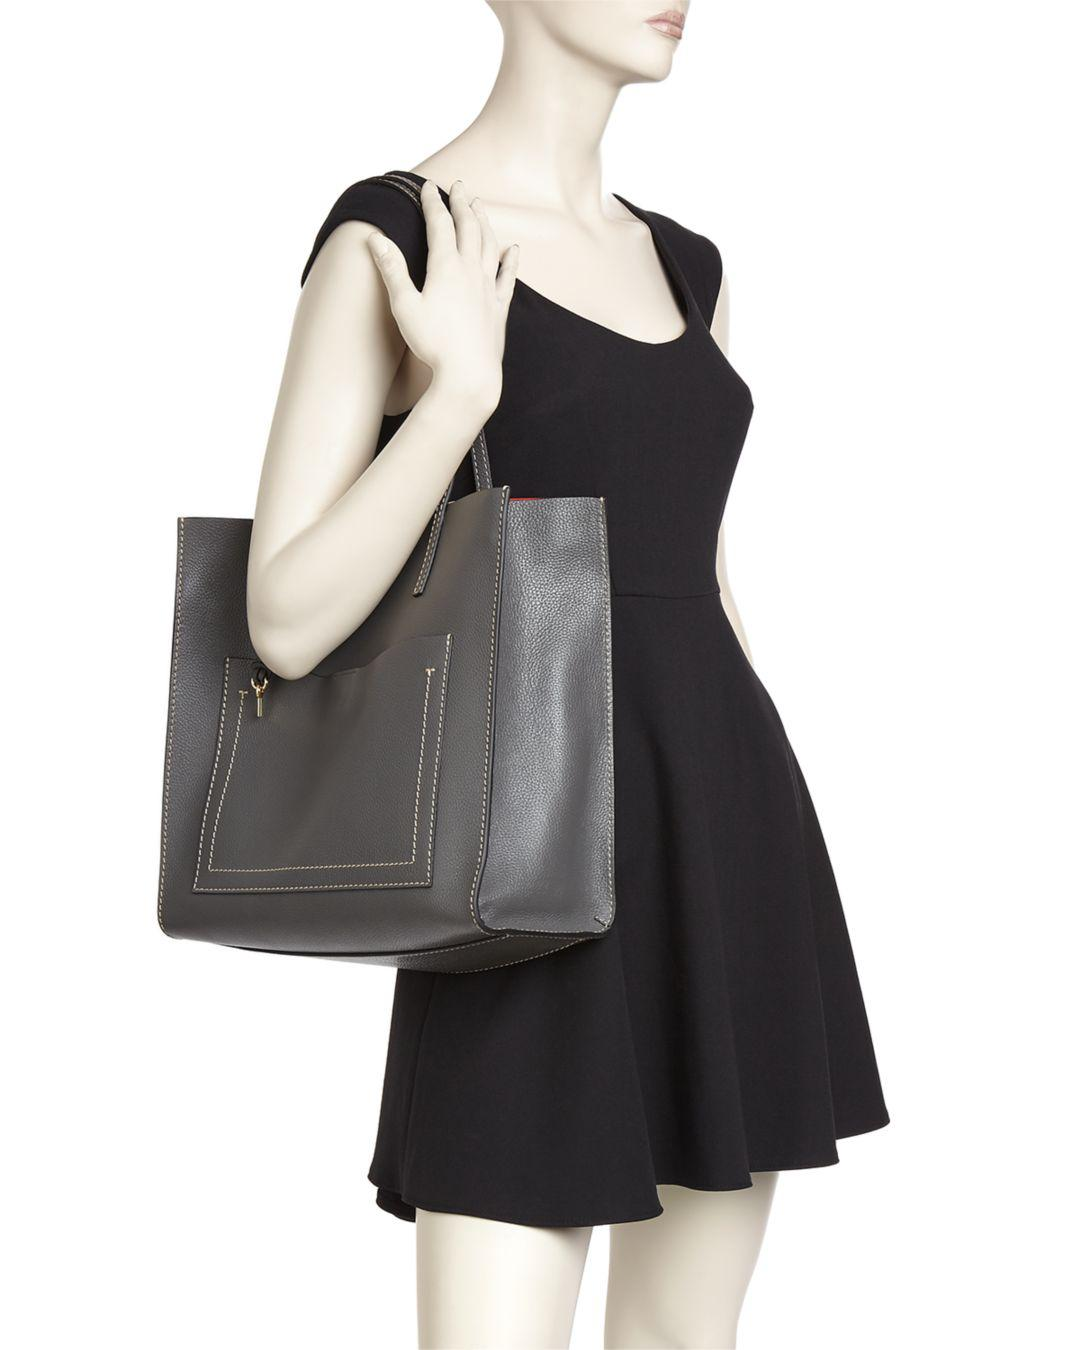 ffc0919853db Marc Jacobs Grind T-pocket Leather Tote in Black - Lyst